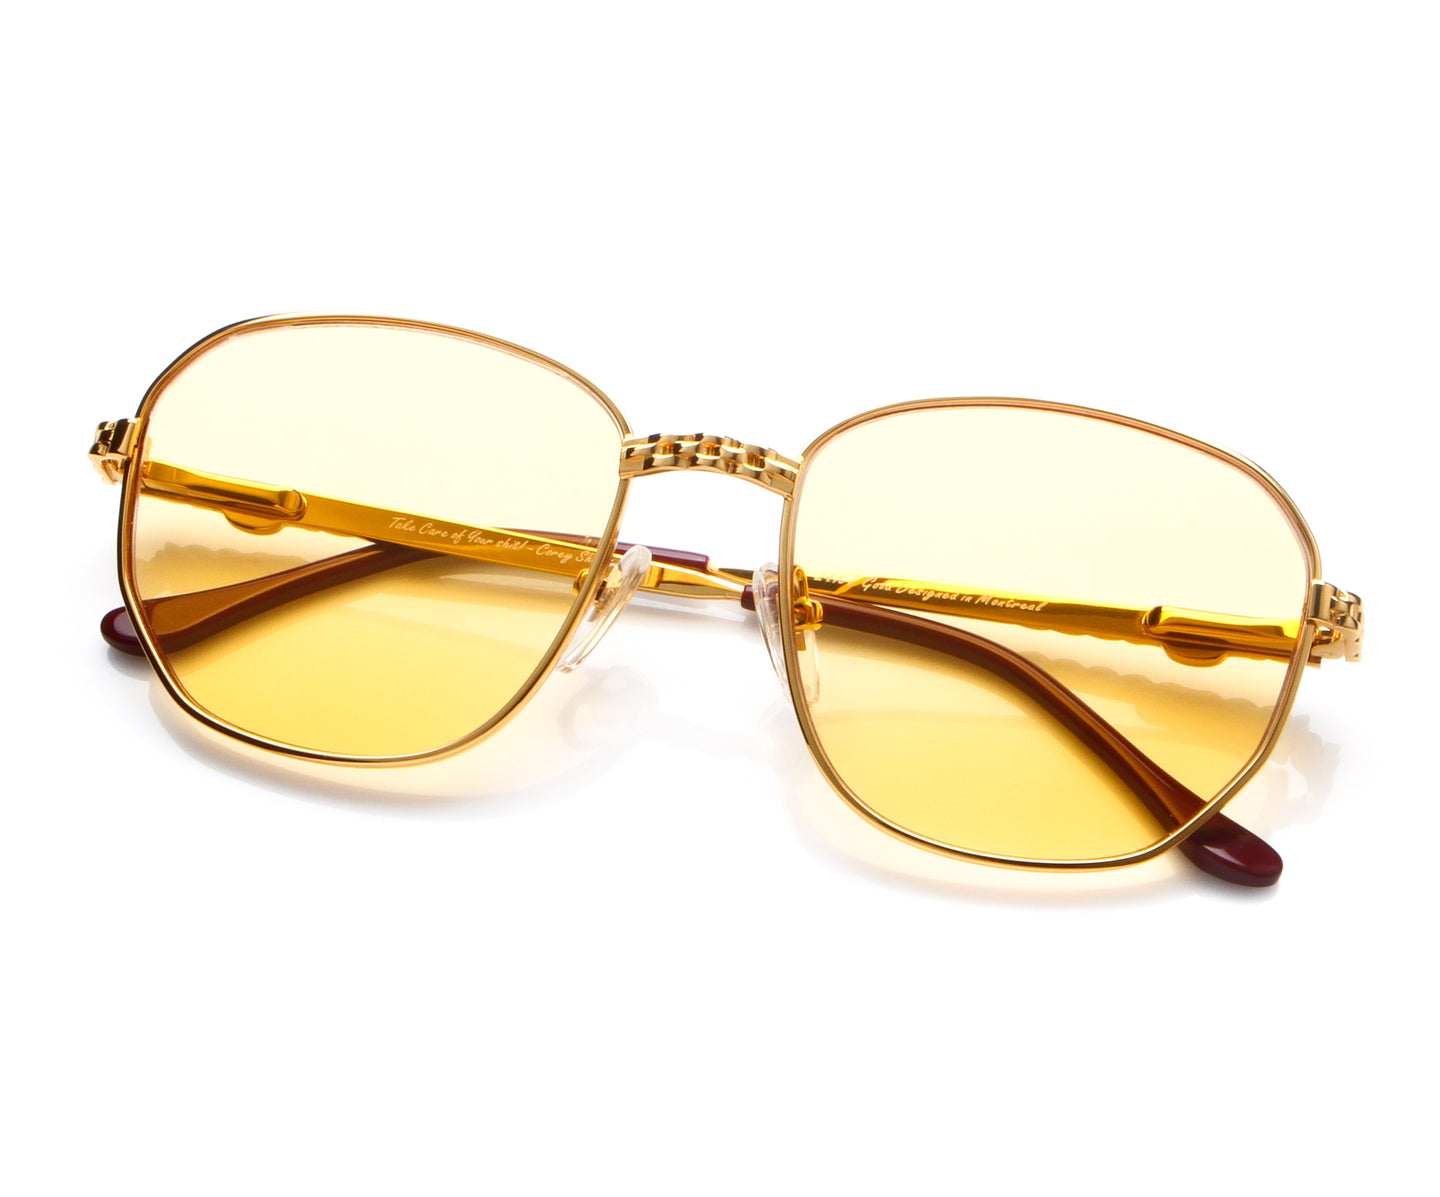 VF Casino Masterpiece 24KT Gold (Honey Yellow) Thumbnail, VF Masterpiece , glasses frames, eyeglasses online, eyeglass frames, mens glasses, womens glasses, buy glasses online, designer eyeglasses, vintage sunglasses, retro sunglasses, vintage glasses, sunglass, eyeglass, glasses, lens, vintage frames company, vf